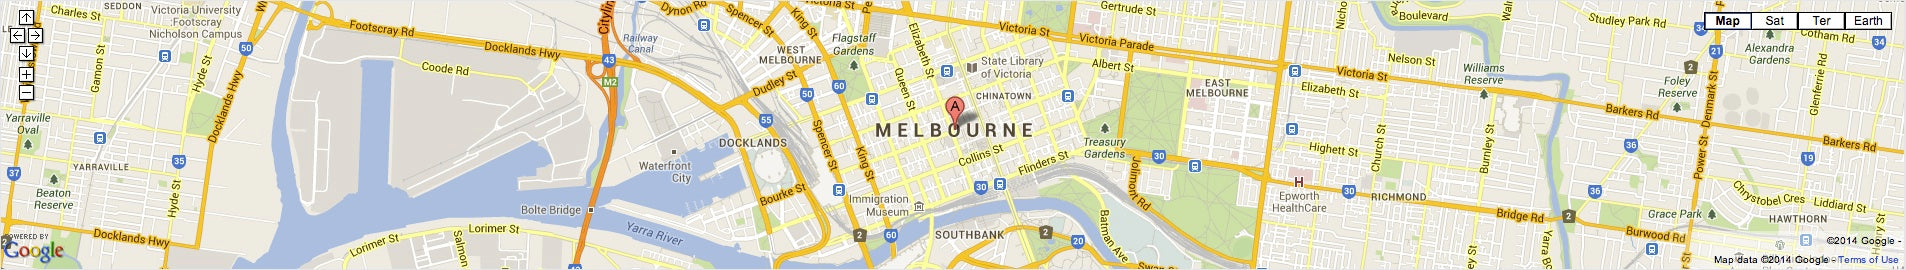 Melbourne information security